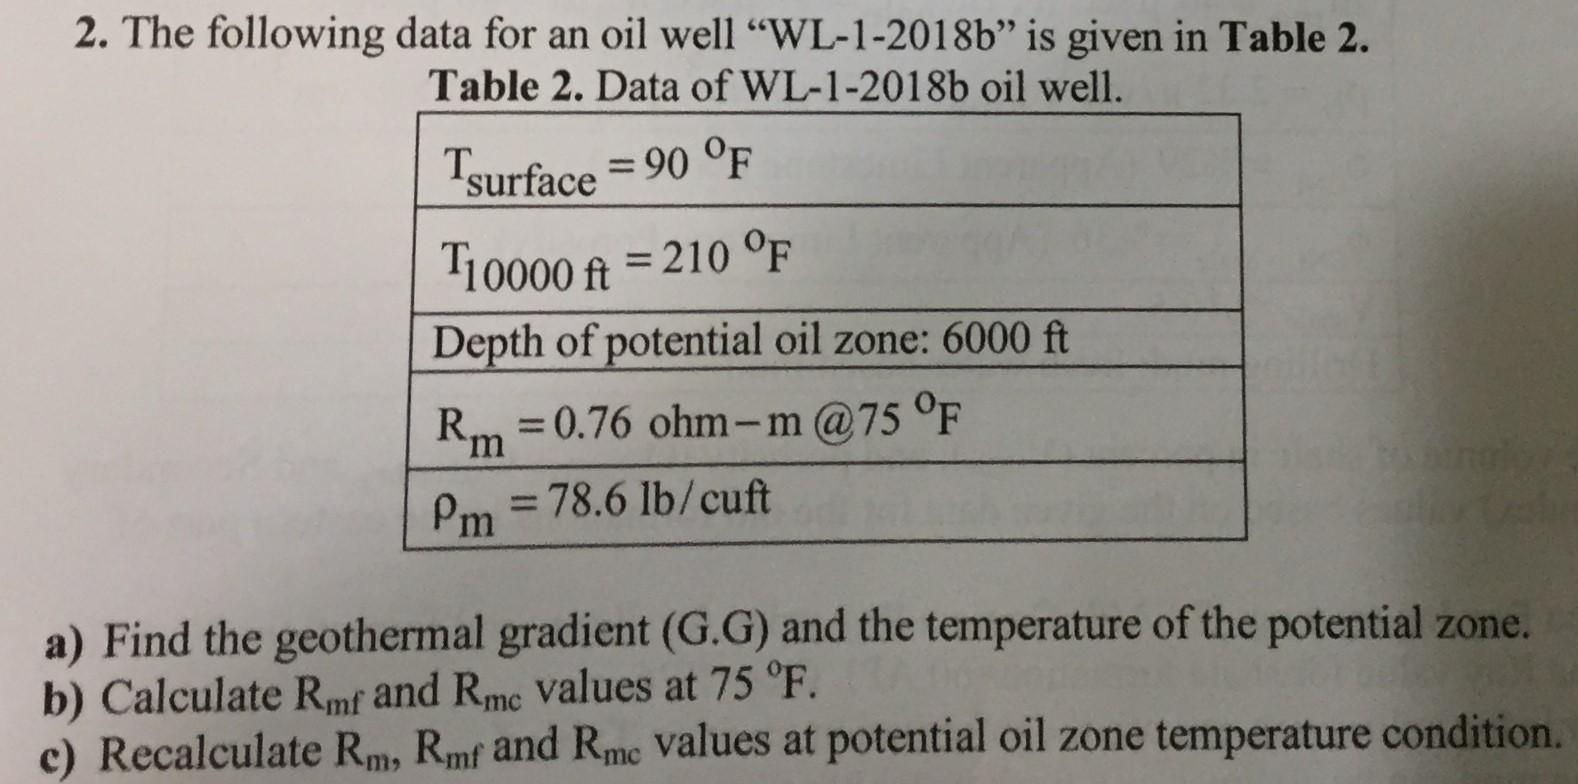 2. The following data for an oil well WL-1-2018b is given in Table 2. Table 2. Data of WL-1-2018b oil well. Tsurface = 90 °